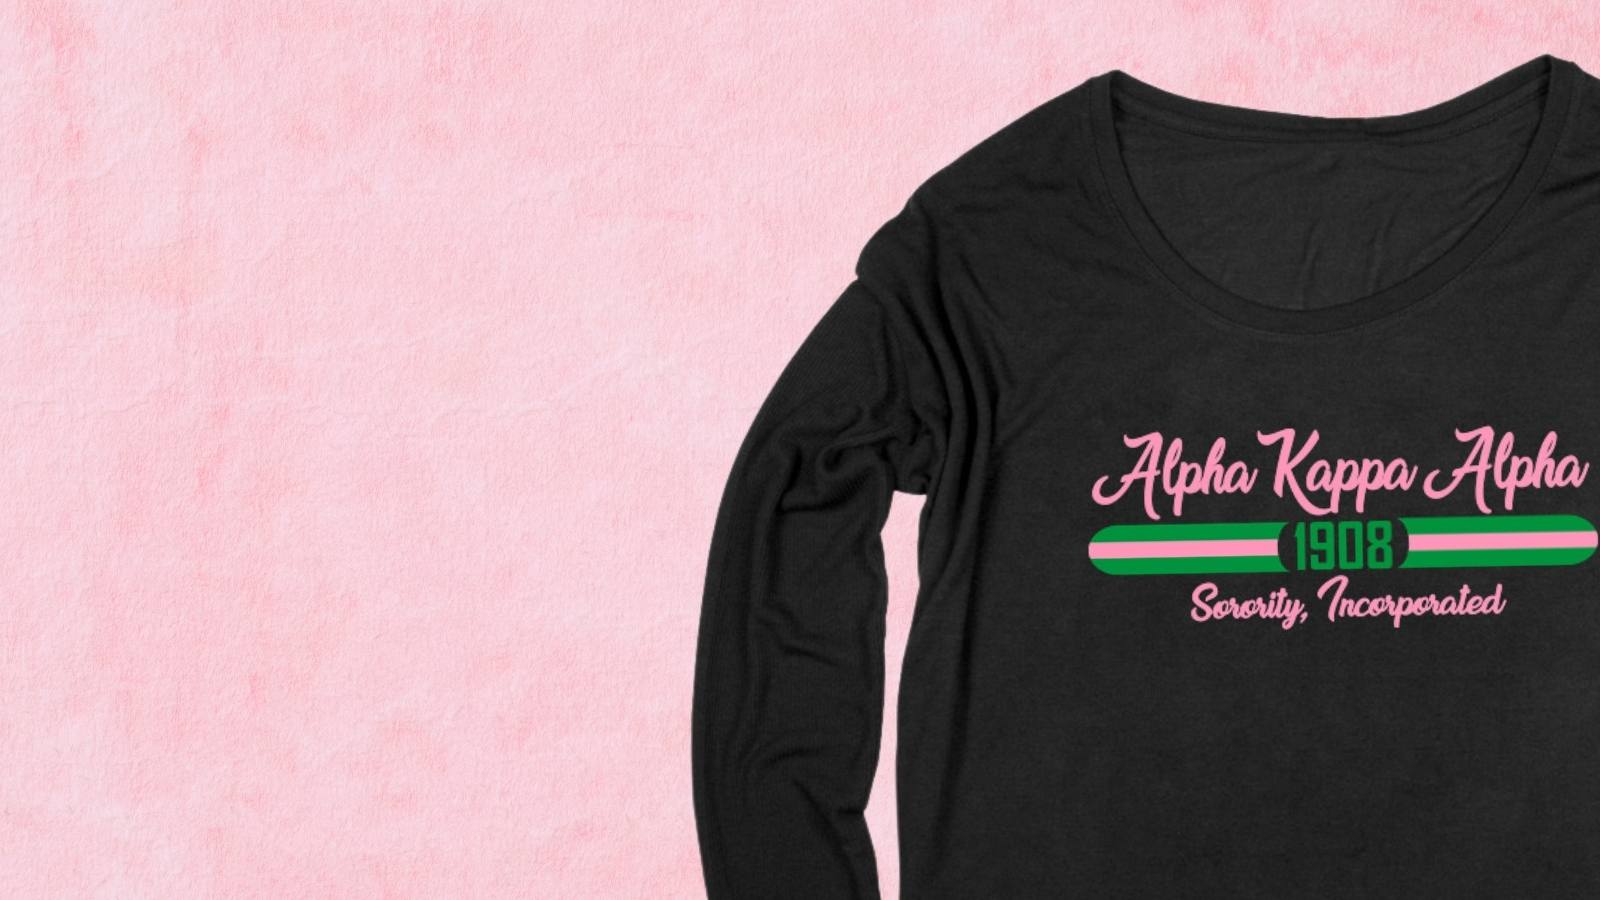 Black sorority long sleeve t-shirt with pink and green text on a pink background